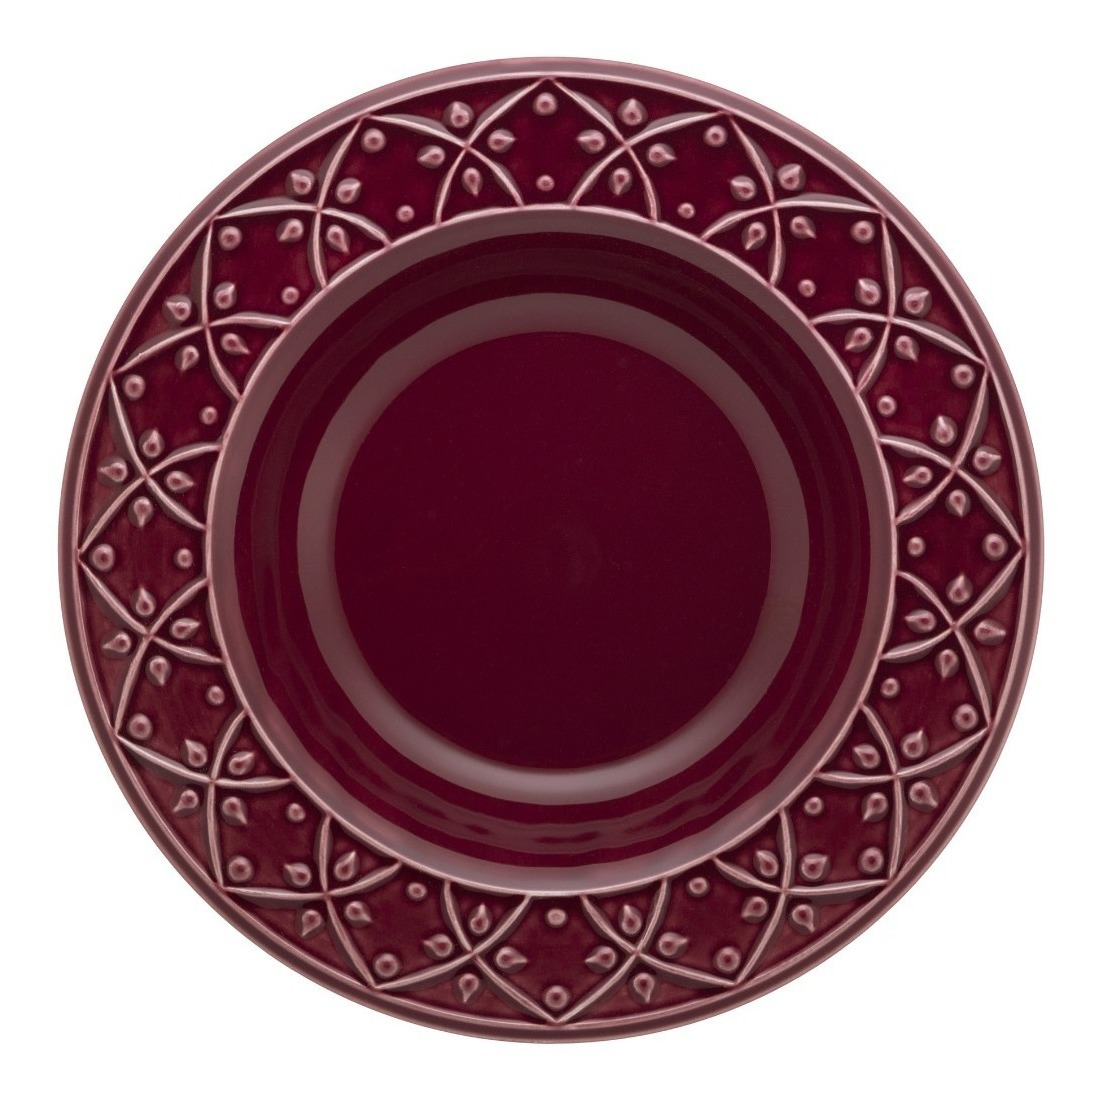 Plato Hondo 23 Cm Ceramica Oxford Corvina Bordo Fino Relieve